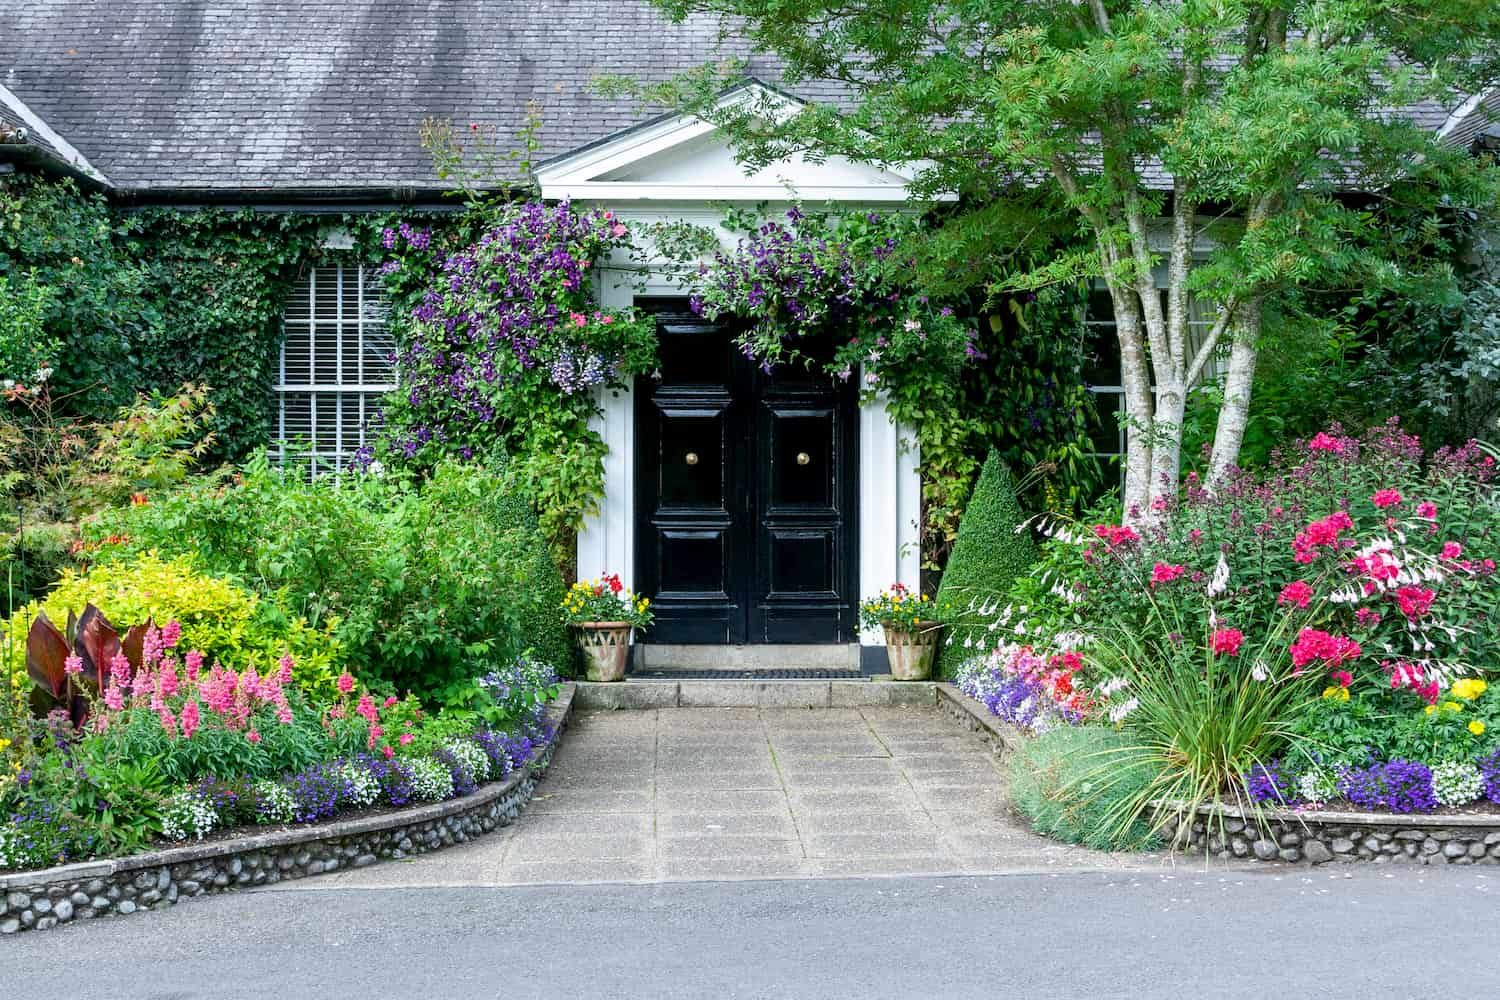 Huge, well-maintained flower bed in front of home abounds with greenery, flowering plants and bushes of all sizes